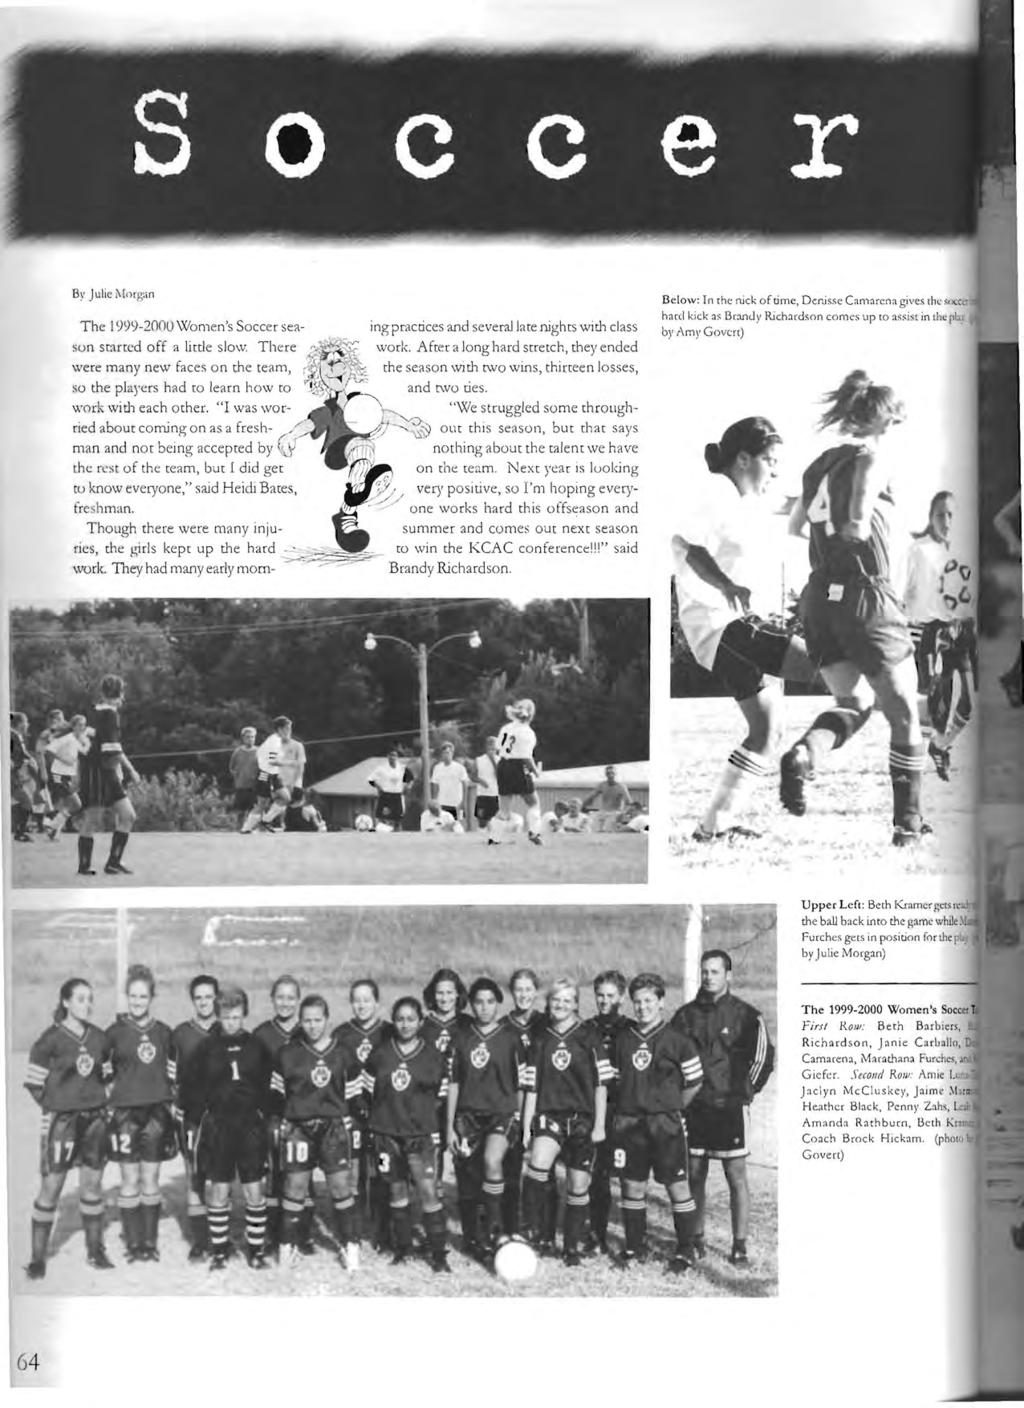 The 999-2ililO Women's Soccer season starred off a titde slow. There were many new faces o n the team, so the players had to learn how to work with each other.